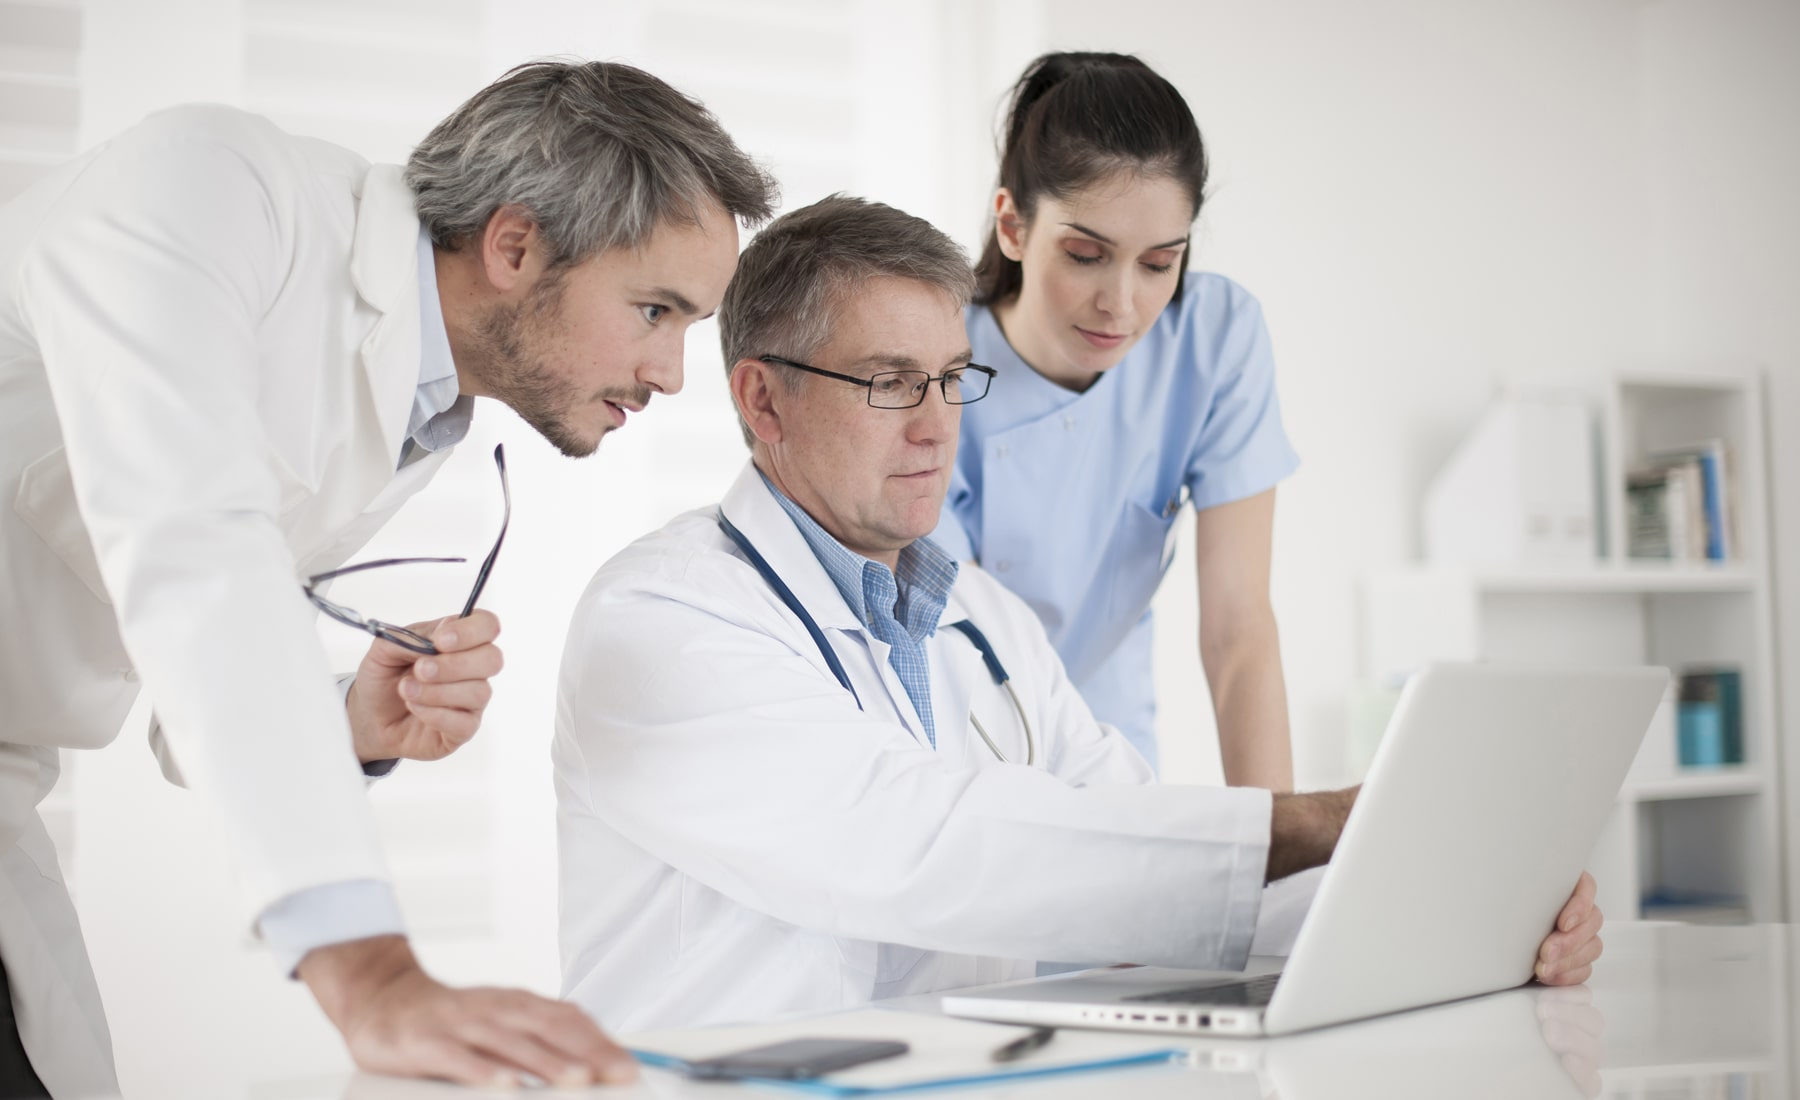 Physician can record the patient's symptoms, diagnose, and order treatment plans